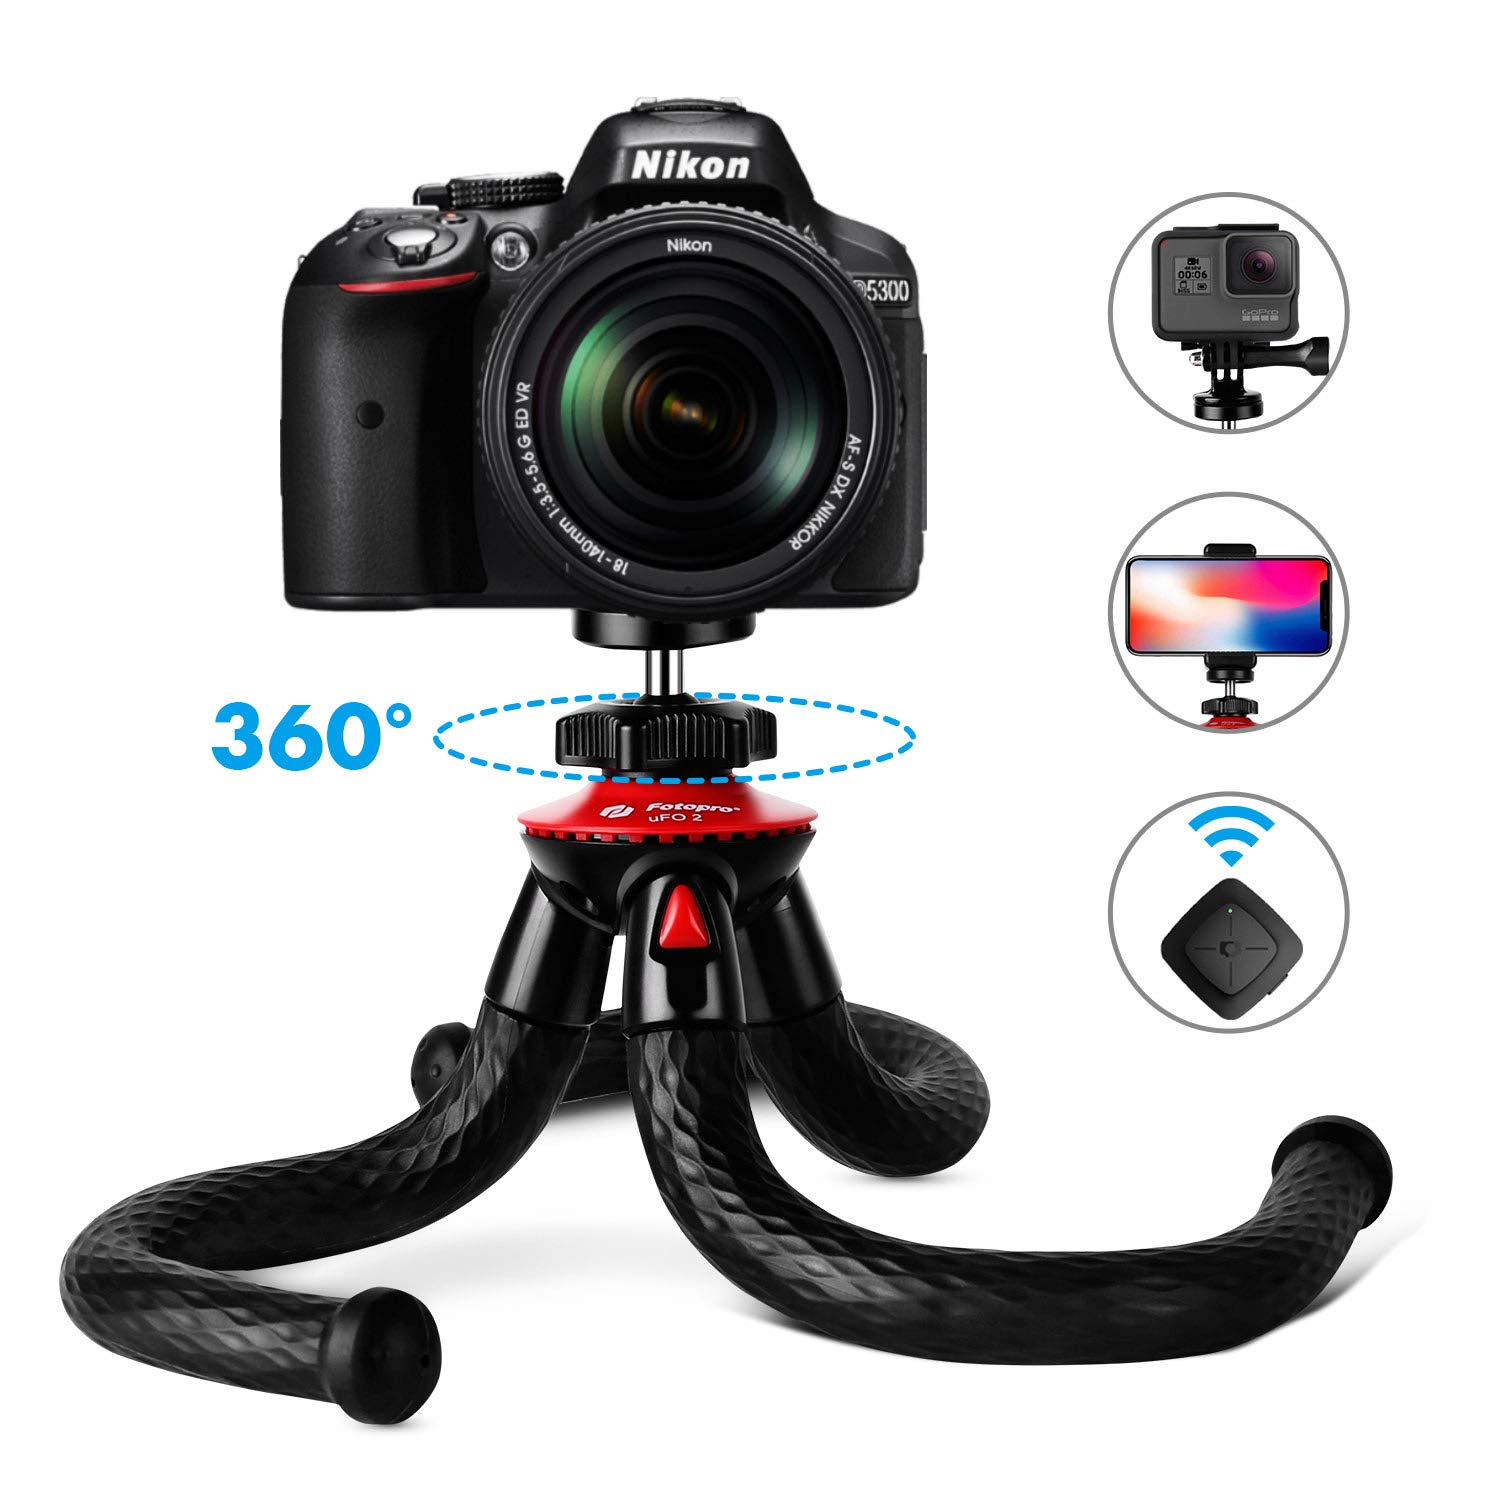 Camera Phone Tripod Fotopro 12' Flexible Waterproof Tripod with Travel Tripod Stand Phone Mount & Bluetooth Remote Control & Sport Camera Adapter for Portable Compact Lightweight Smartphone Tripod FOTOPRO US UFO2 set